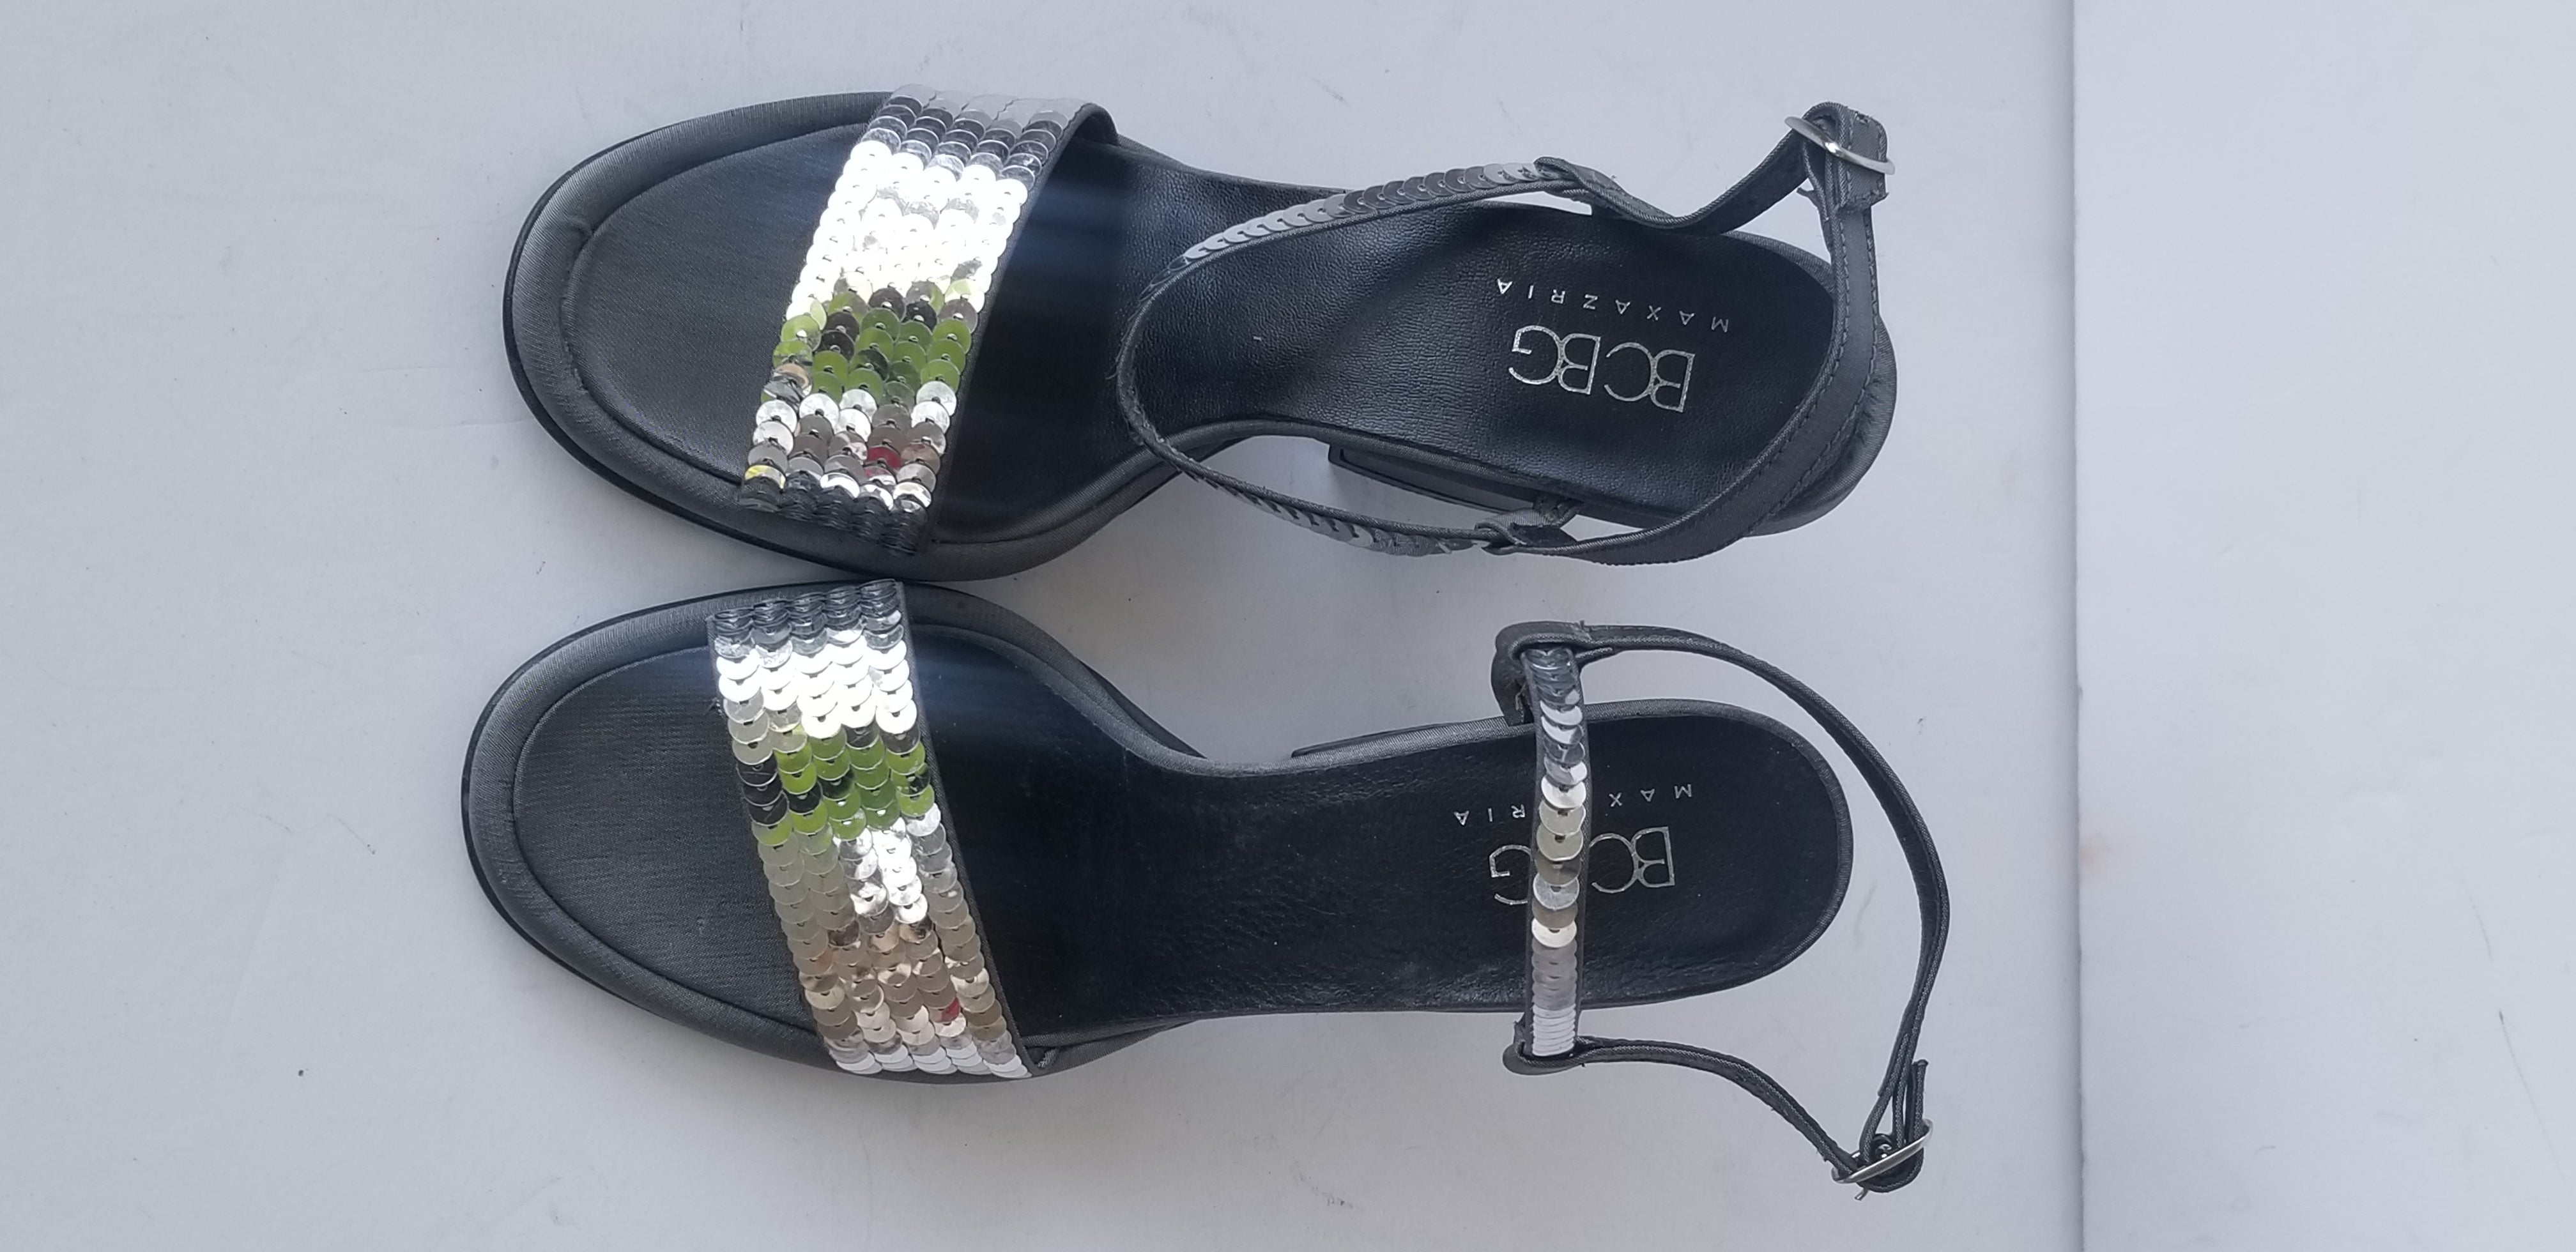 BCBG MAXAZRIA women's sandals gray satin sequins block heels size 7B made in Italy